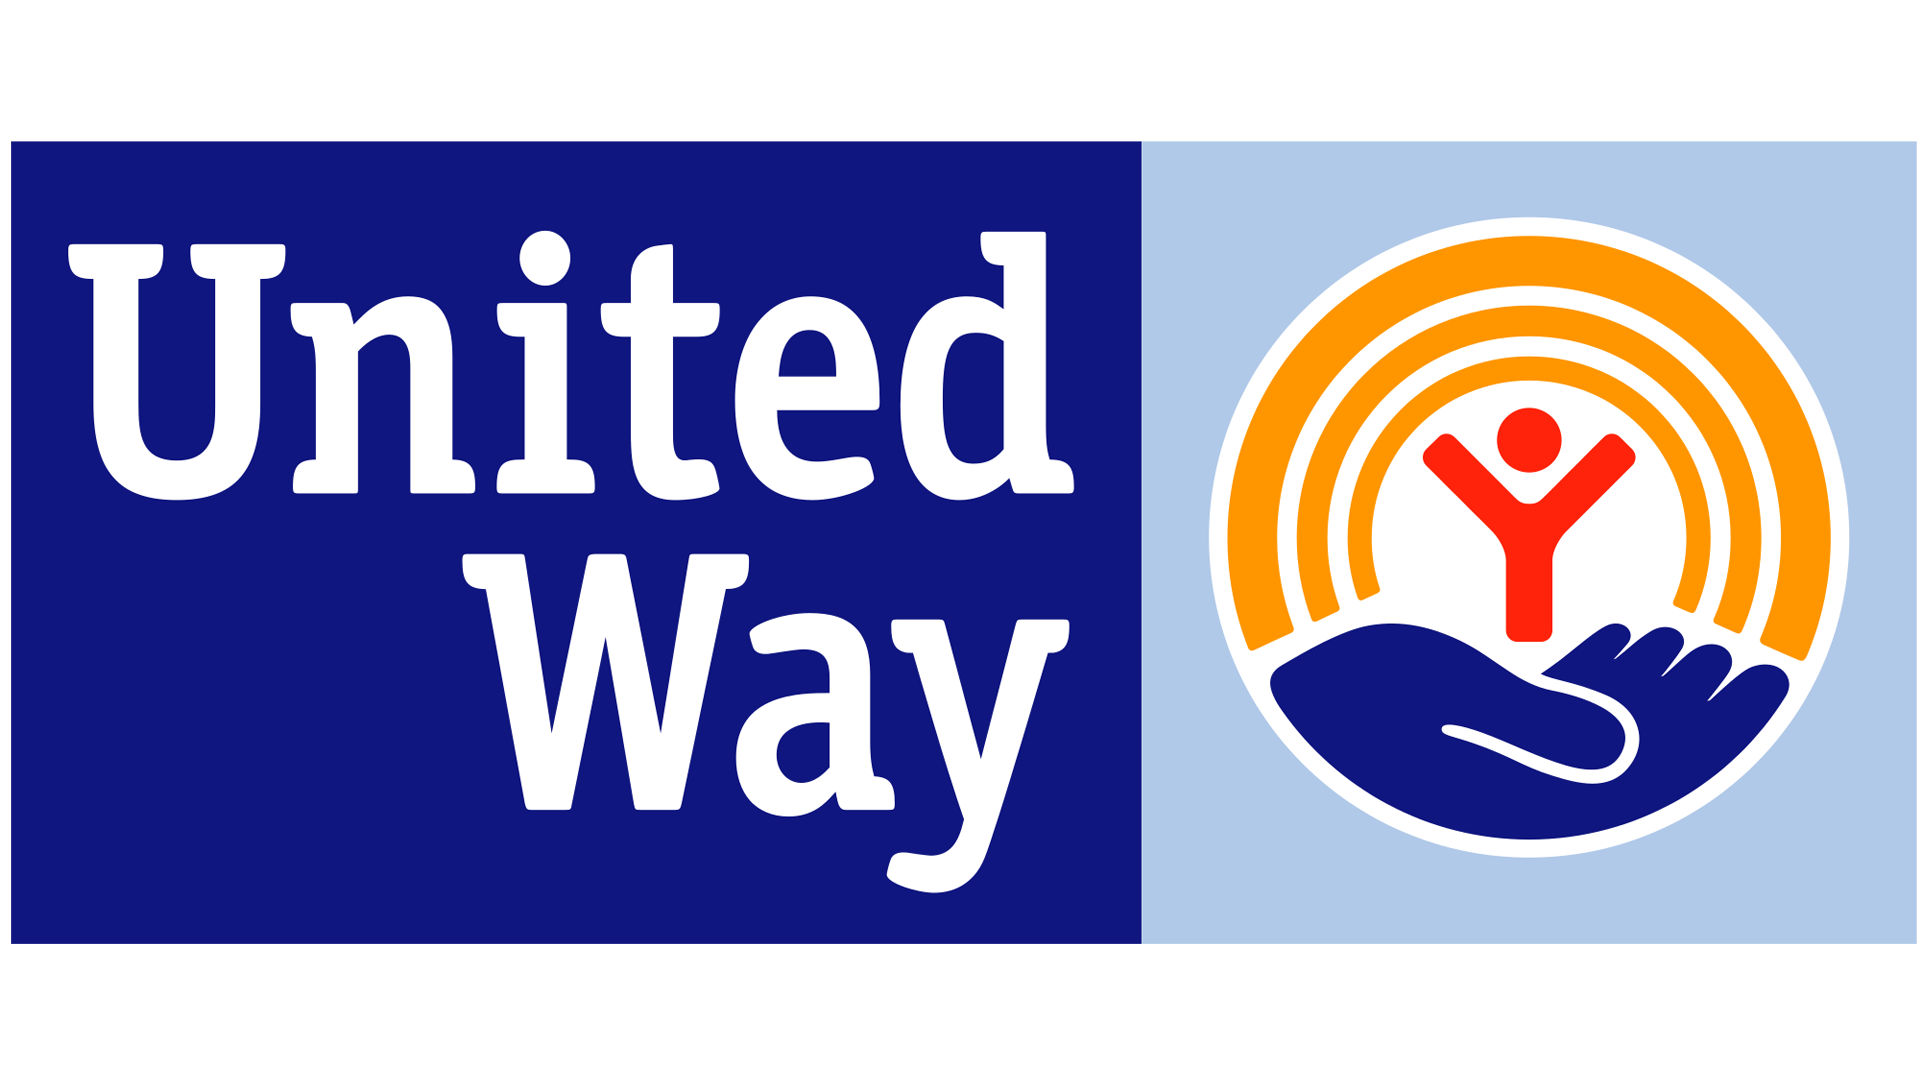 United Way of Green County